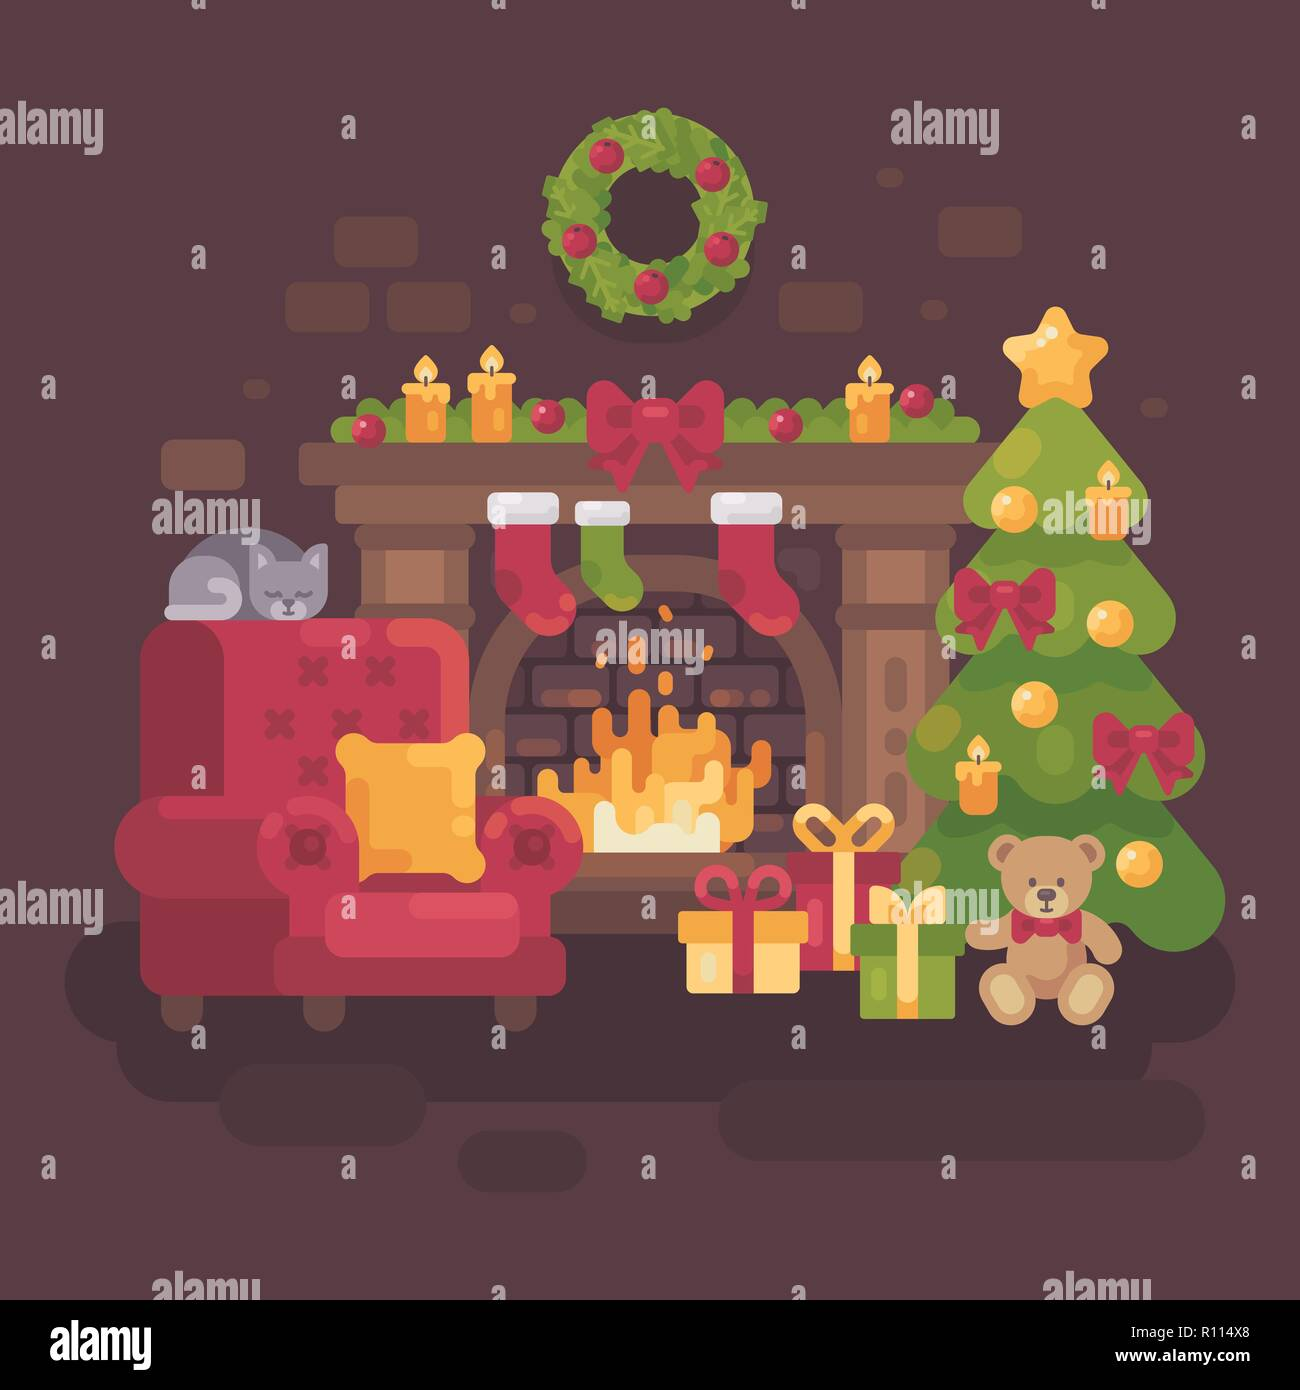 Cozy decorated Christmas room with a fireplace, a red armchair, a Christmas tree with presents and a sleeping cat. Holiday flat illustration - Stock Vector